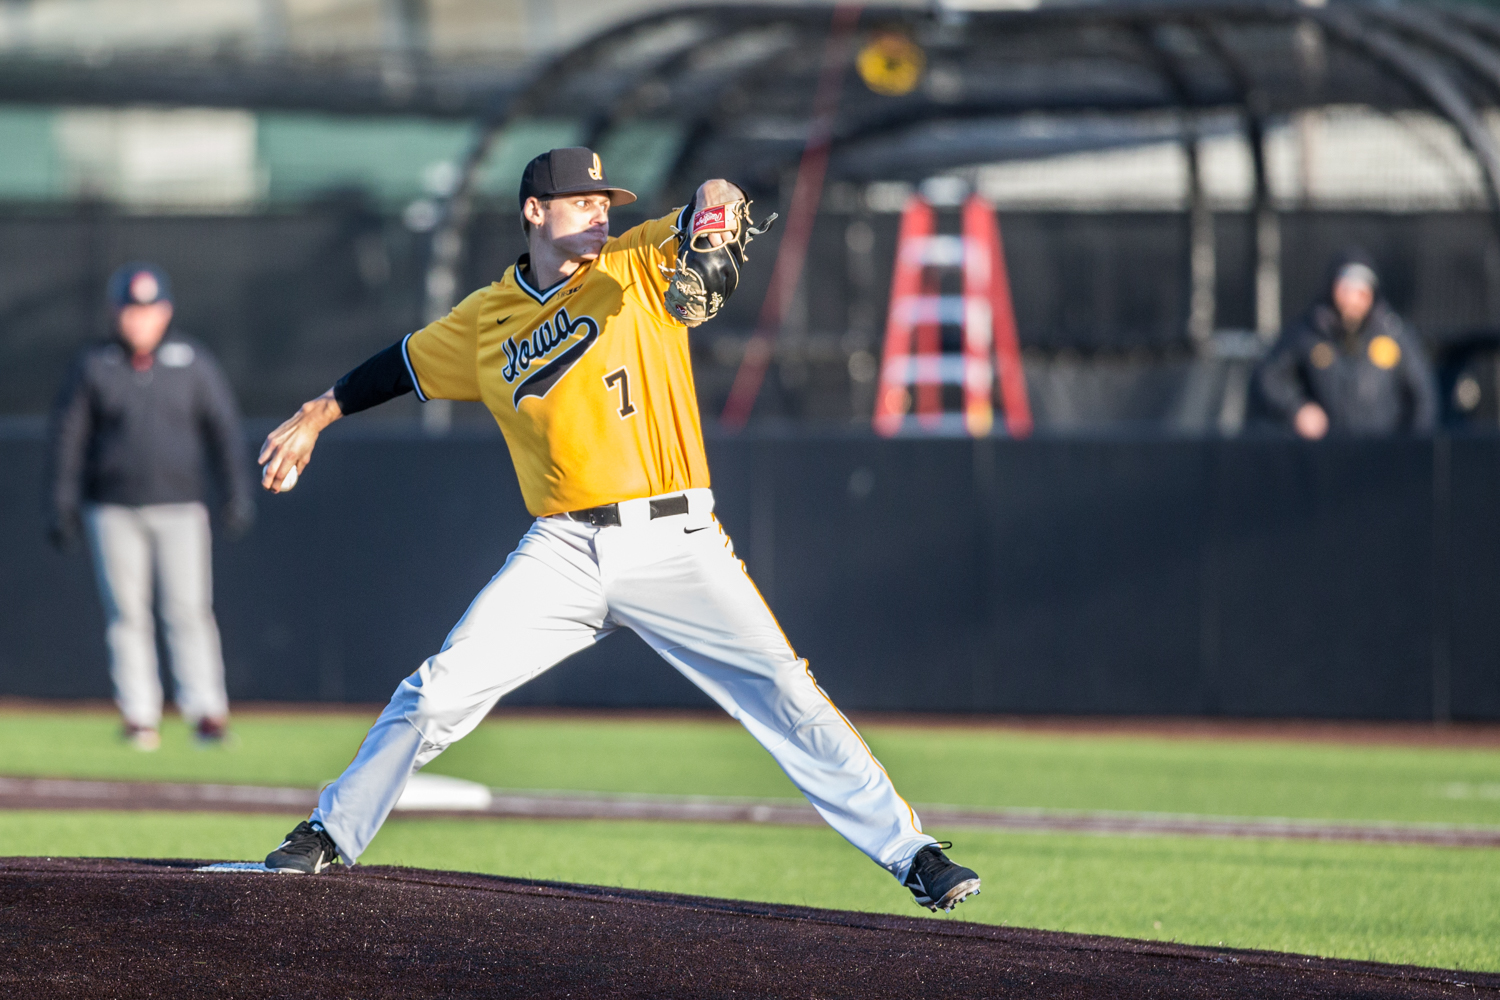 Iowa pitcher Grant Judkins throws a pitch during the second game of a baseball doubleheader between Iowa and Cal-State Northridge at Duane Banks Field on Sunday, March 17, 2019. The Hawkeyes took the series by defeating the Matadors, 3-1.